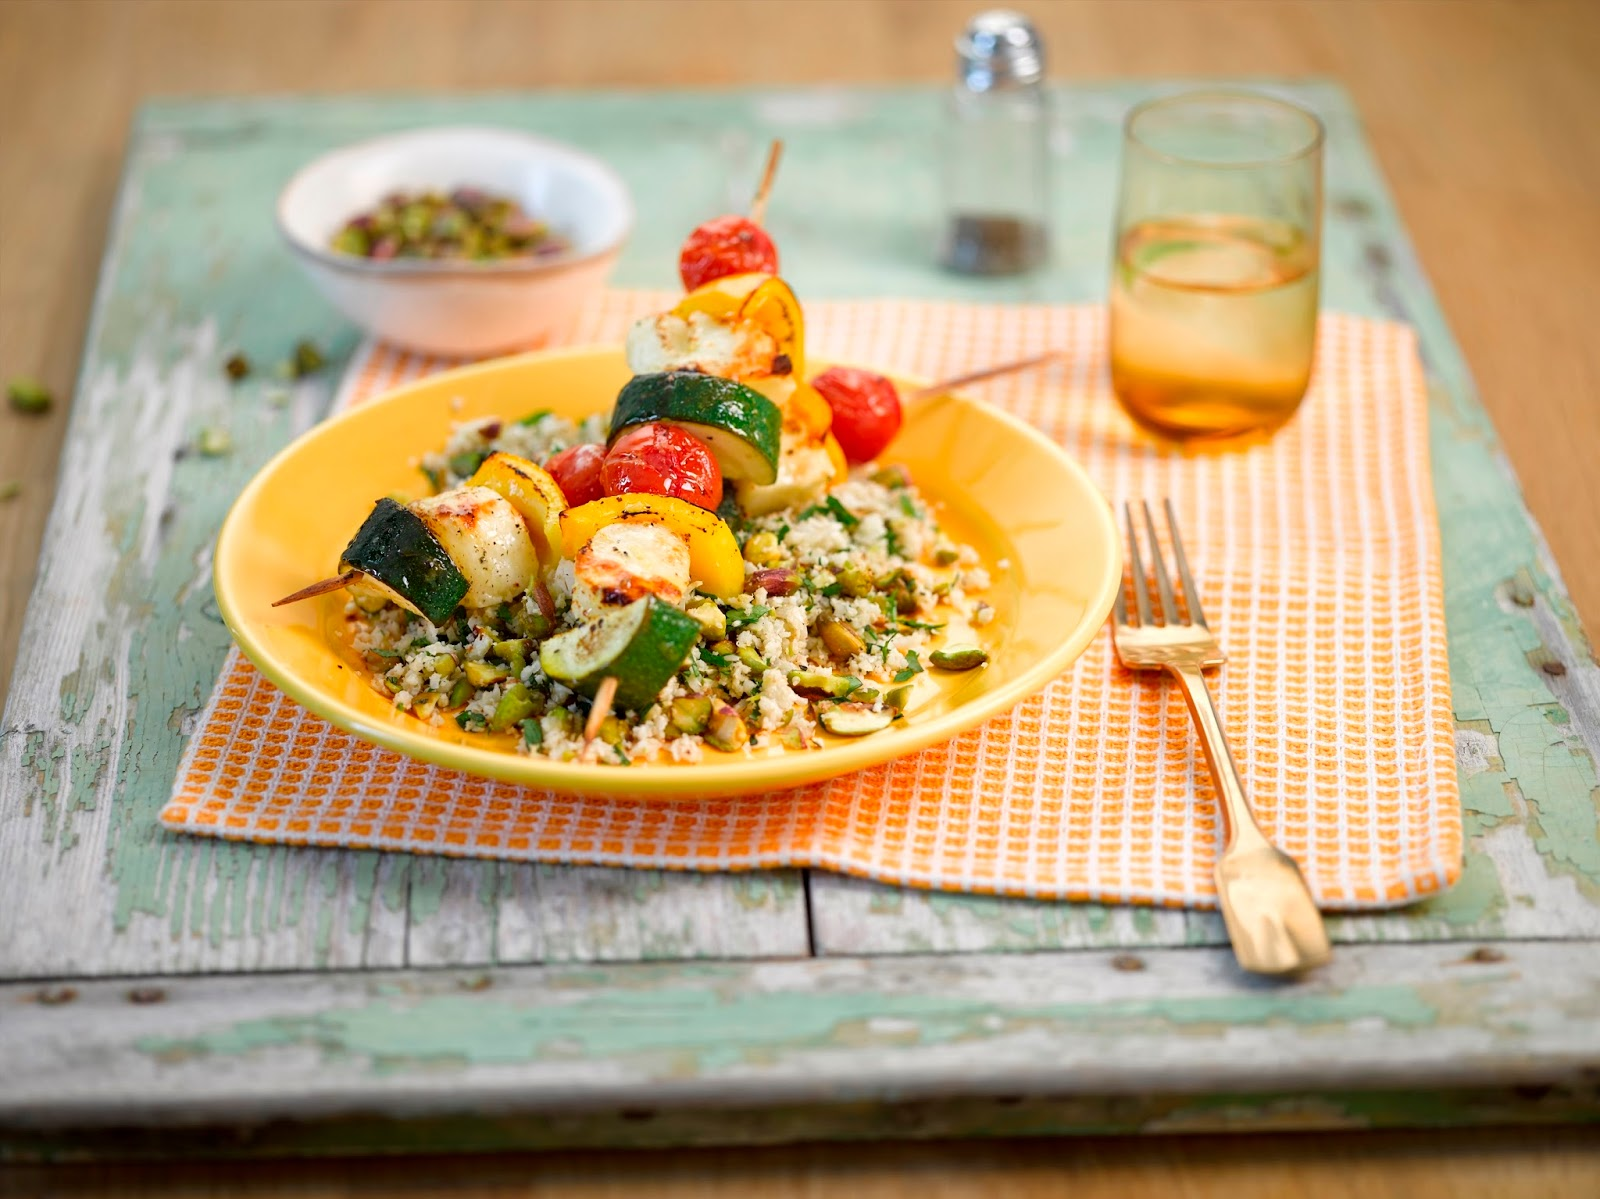 Cauliflower And Pistachio Couscous With Halloumi And Vegetable Kebabs...